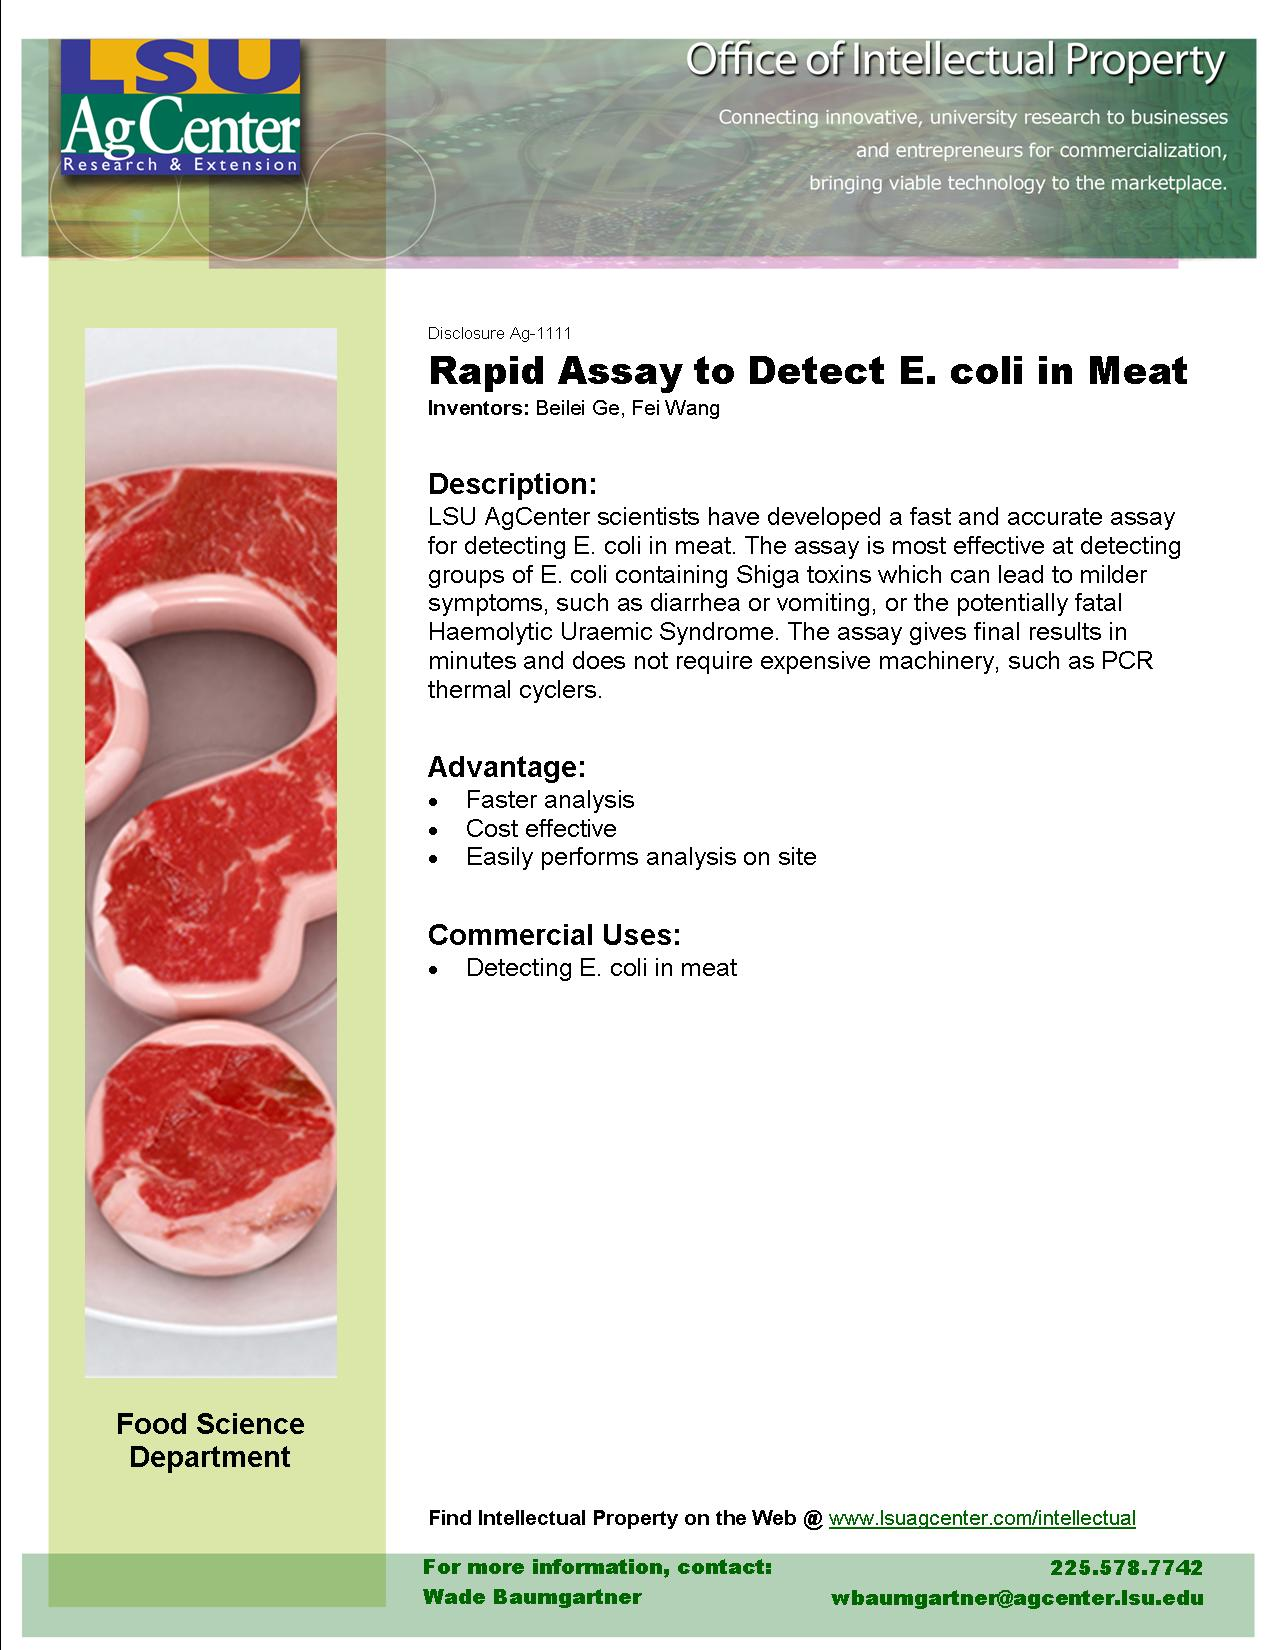 Rapid Assay to Detect E. coli in Meat